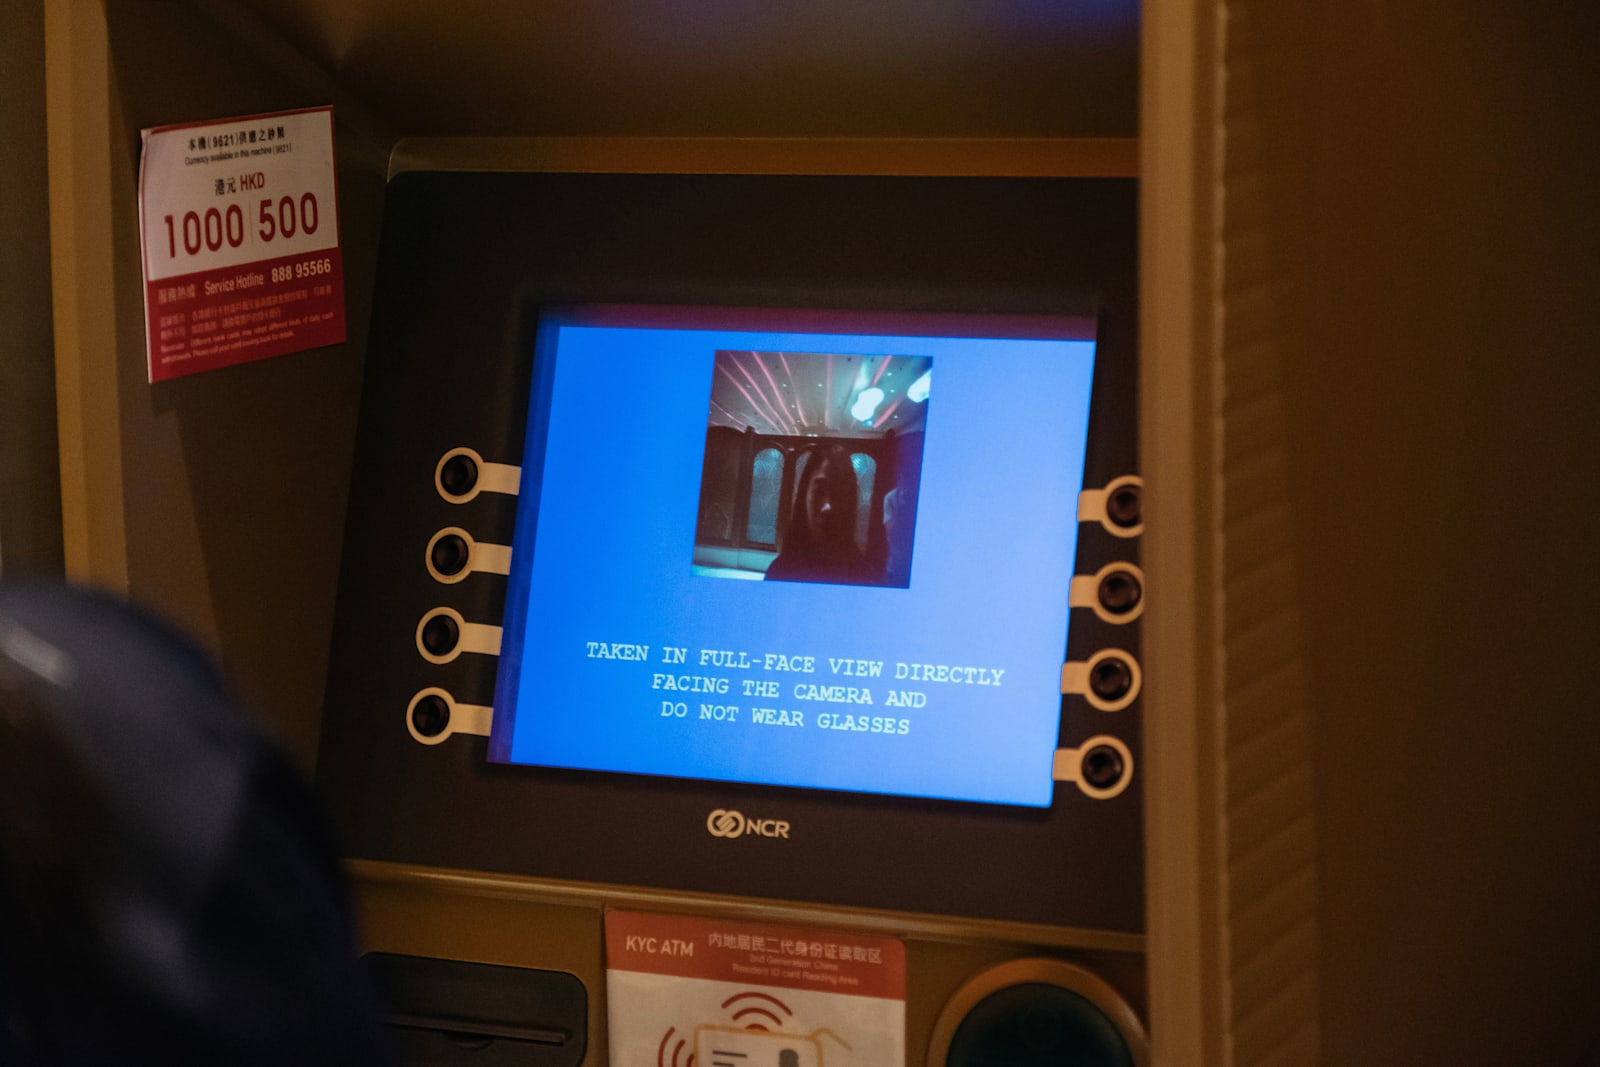 You'll need to show your face to use ATMs in Macau